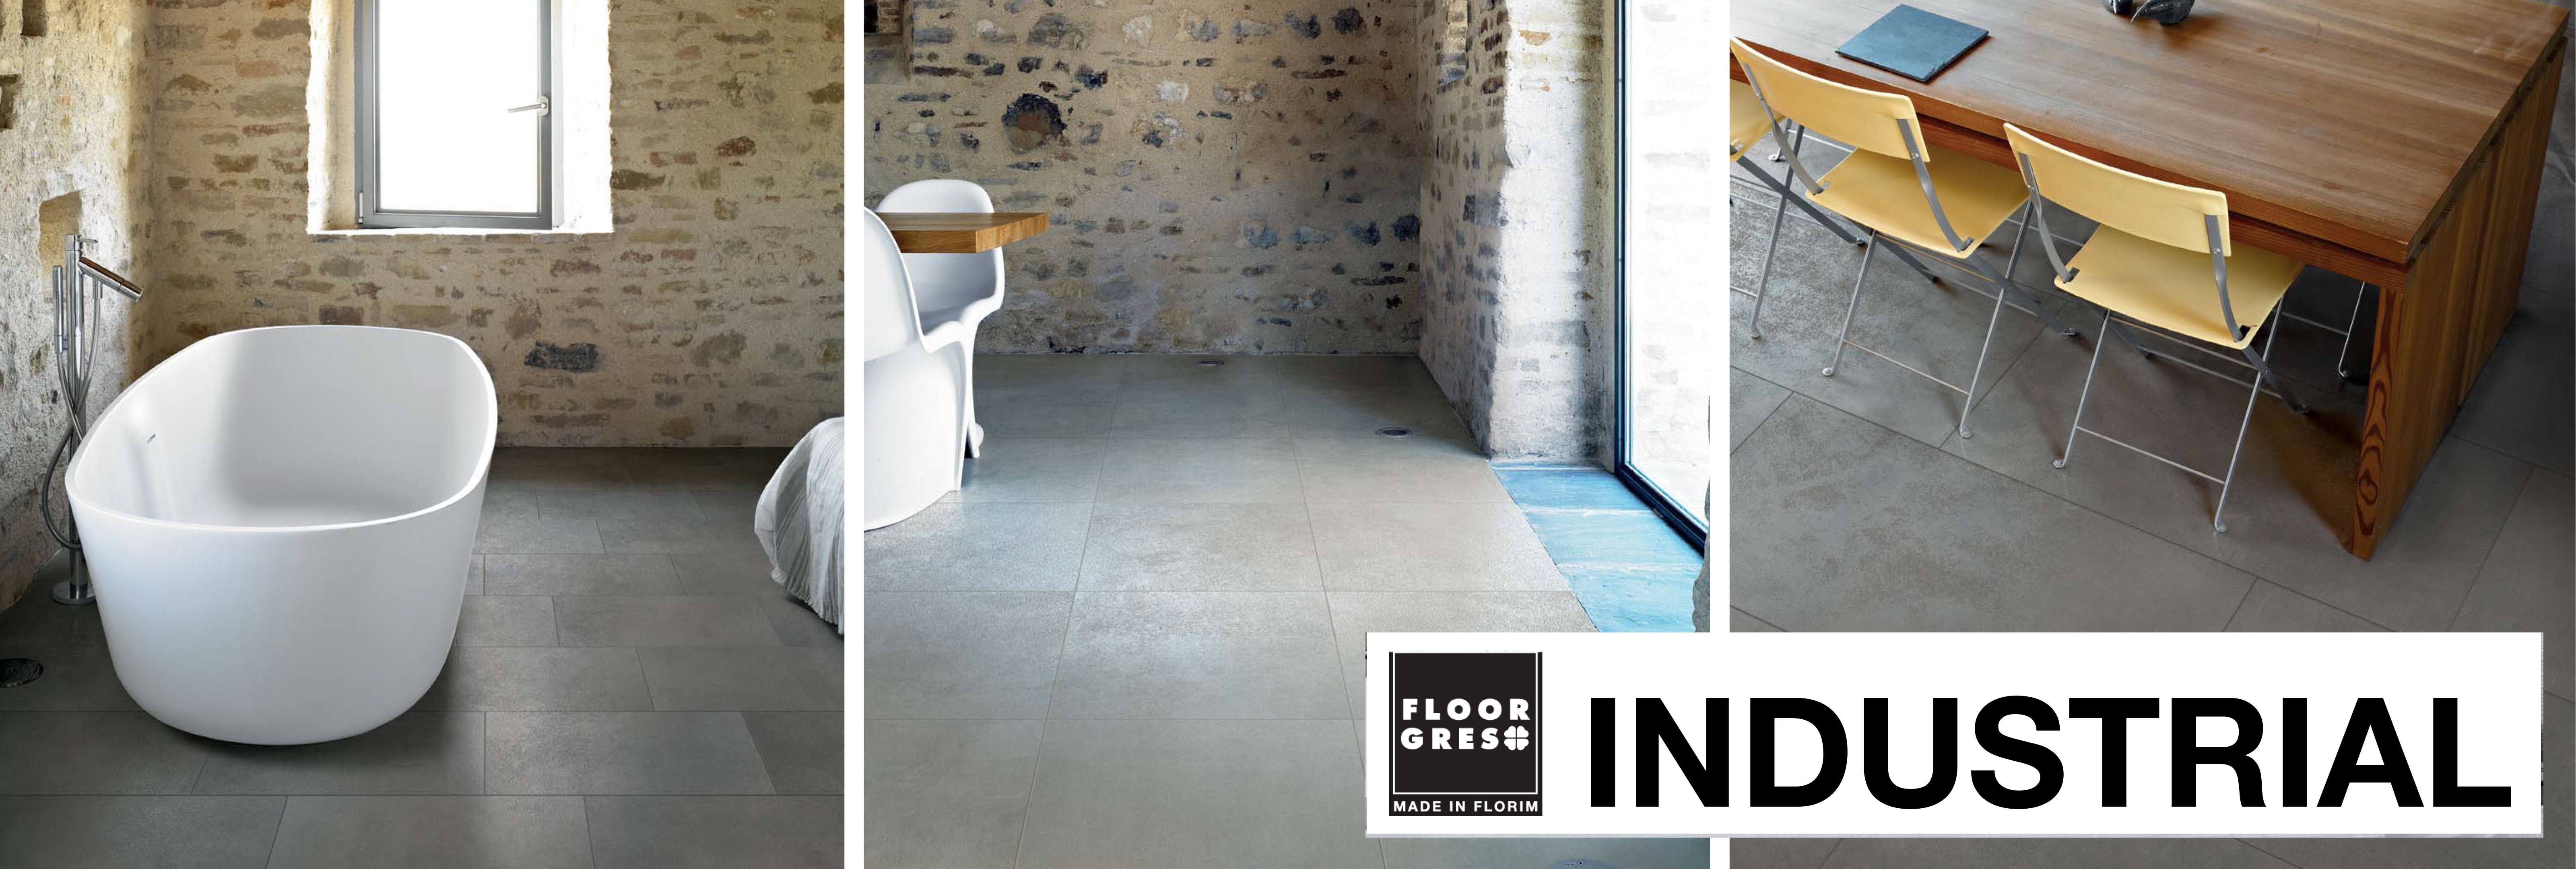 Floorgres industrial italian porcelain tile floor gres industrial italian porcelain tile dailygadgetfo Image collections